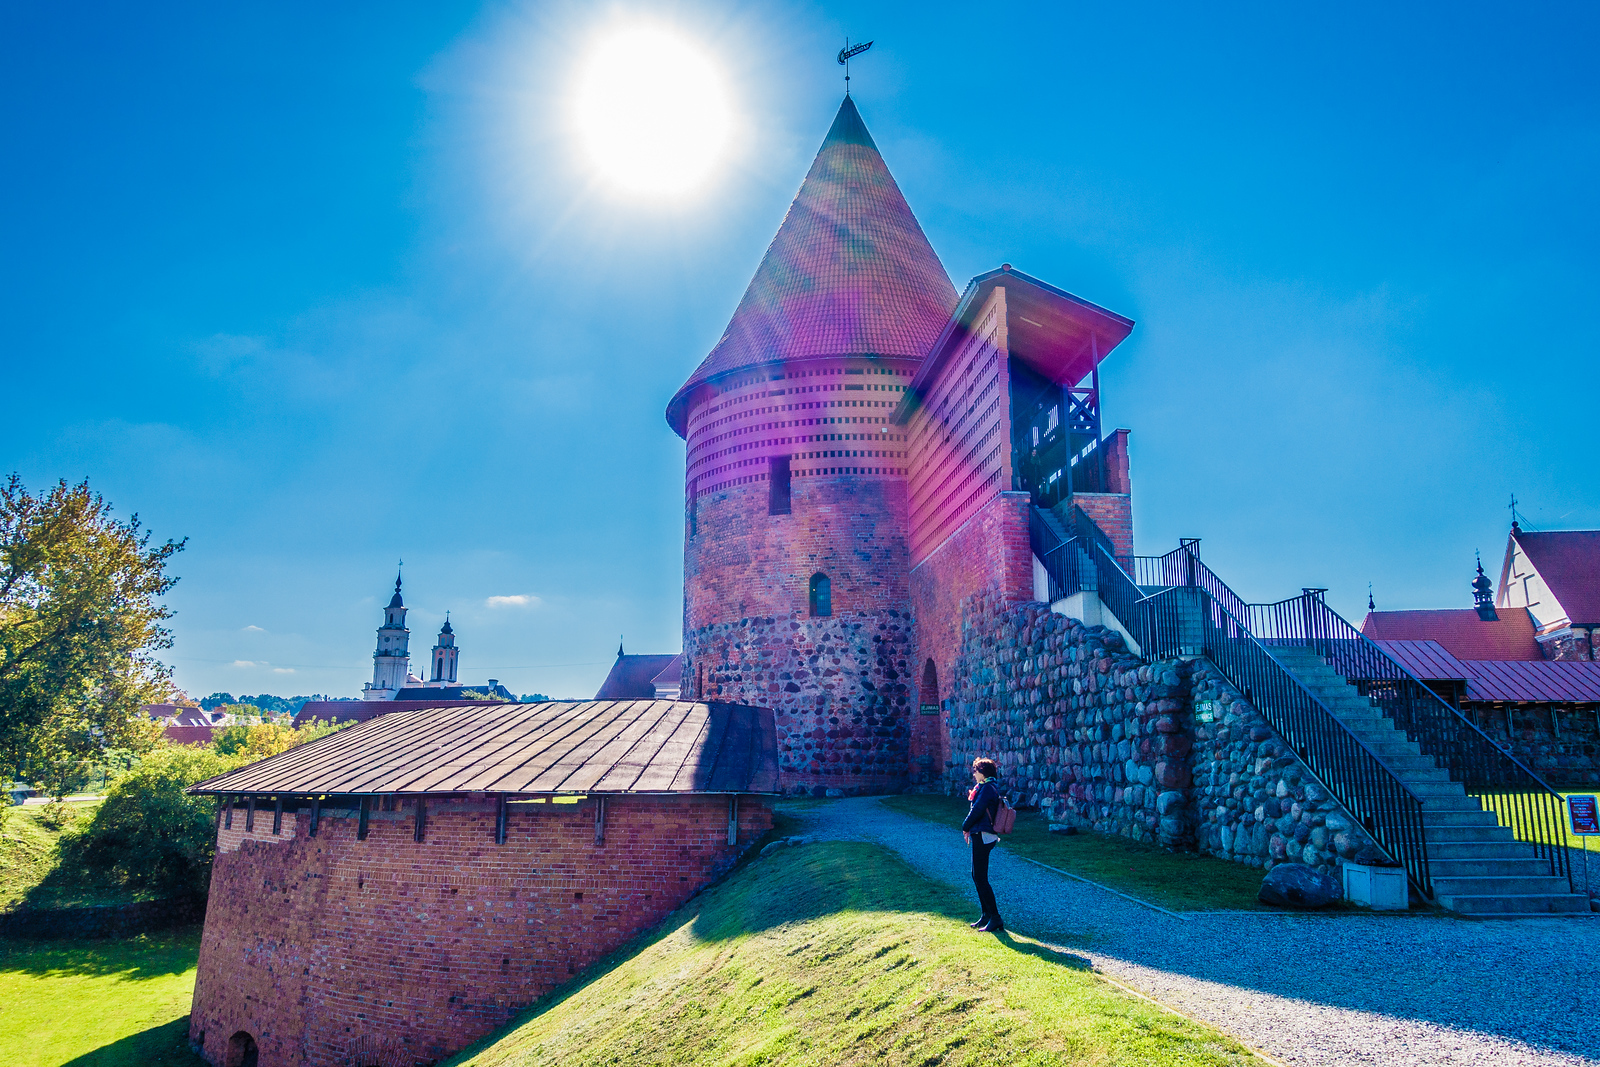 Lithuania Travel Guide - Kaunas Castle